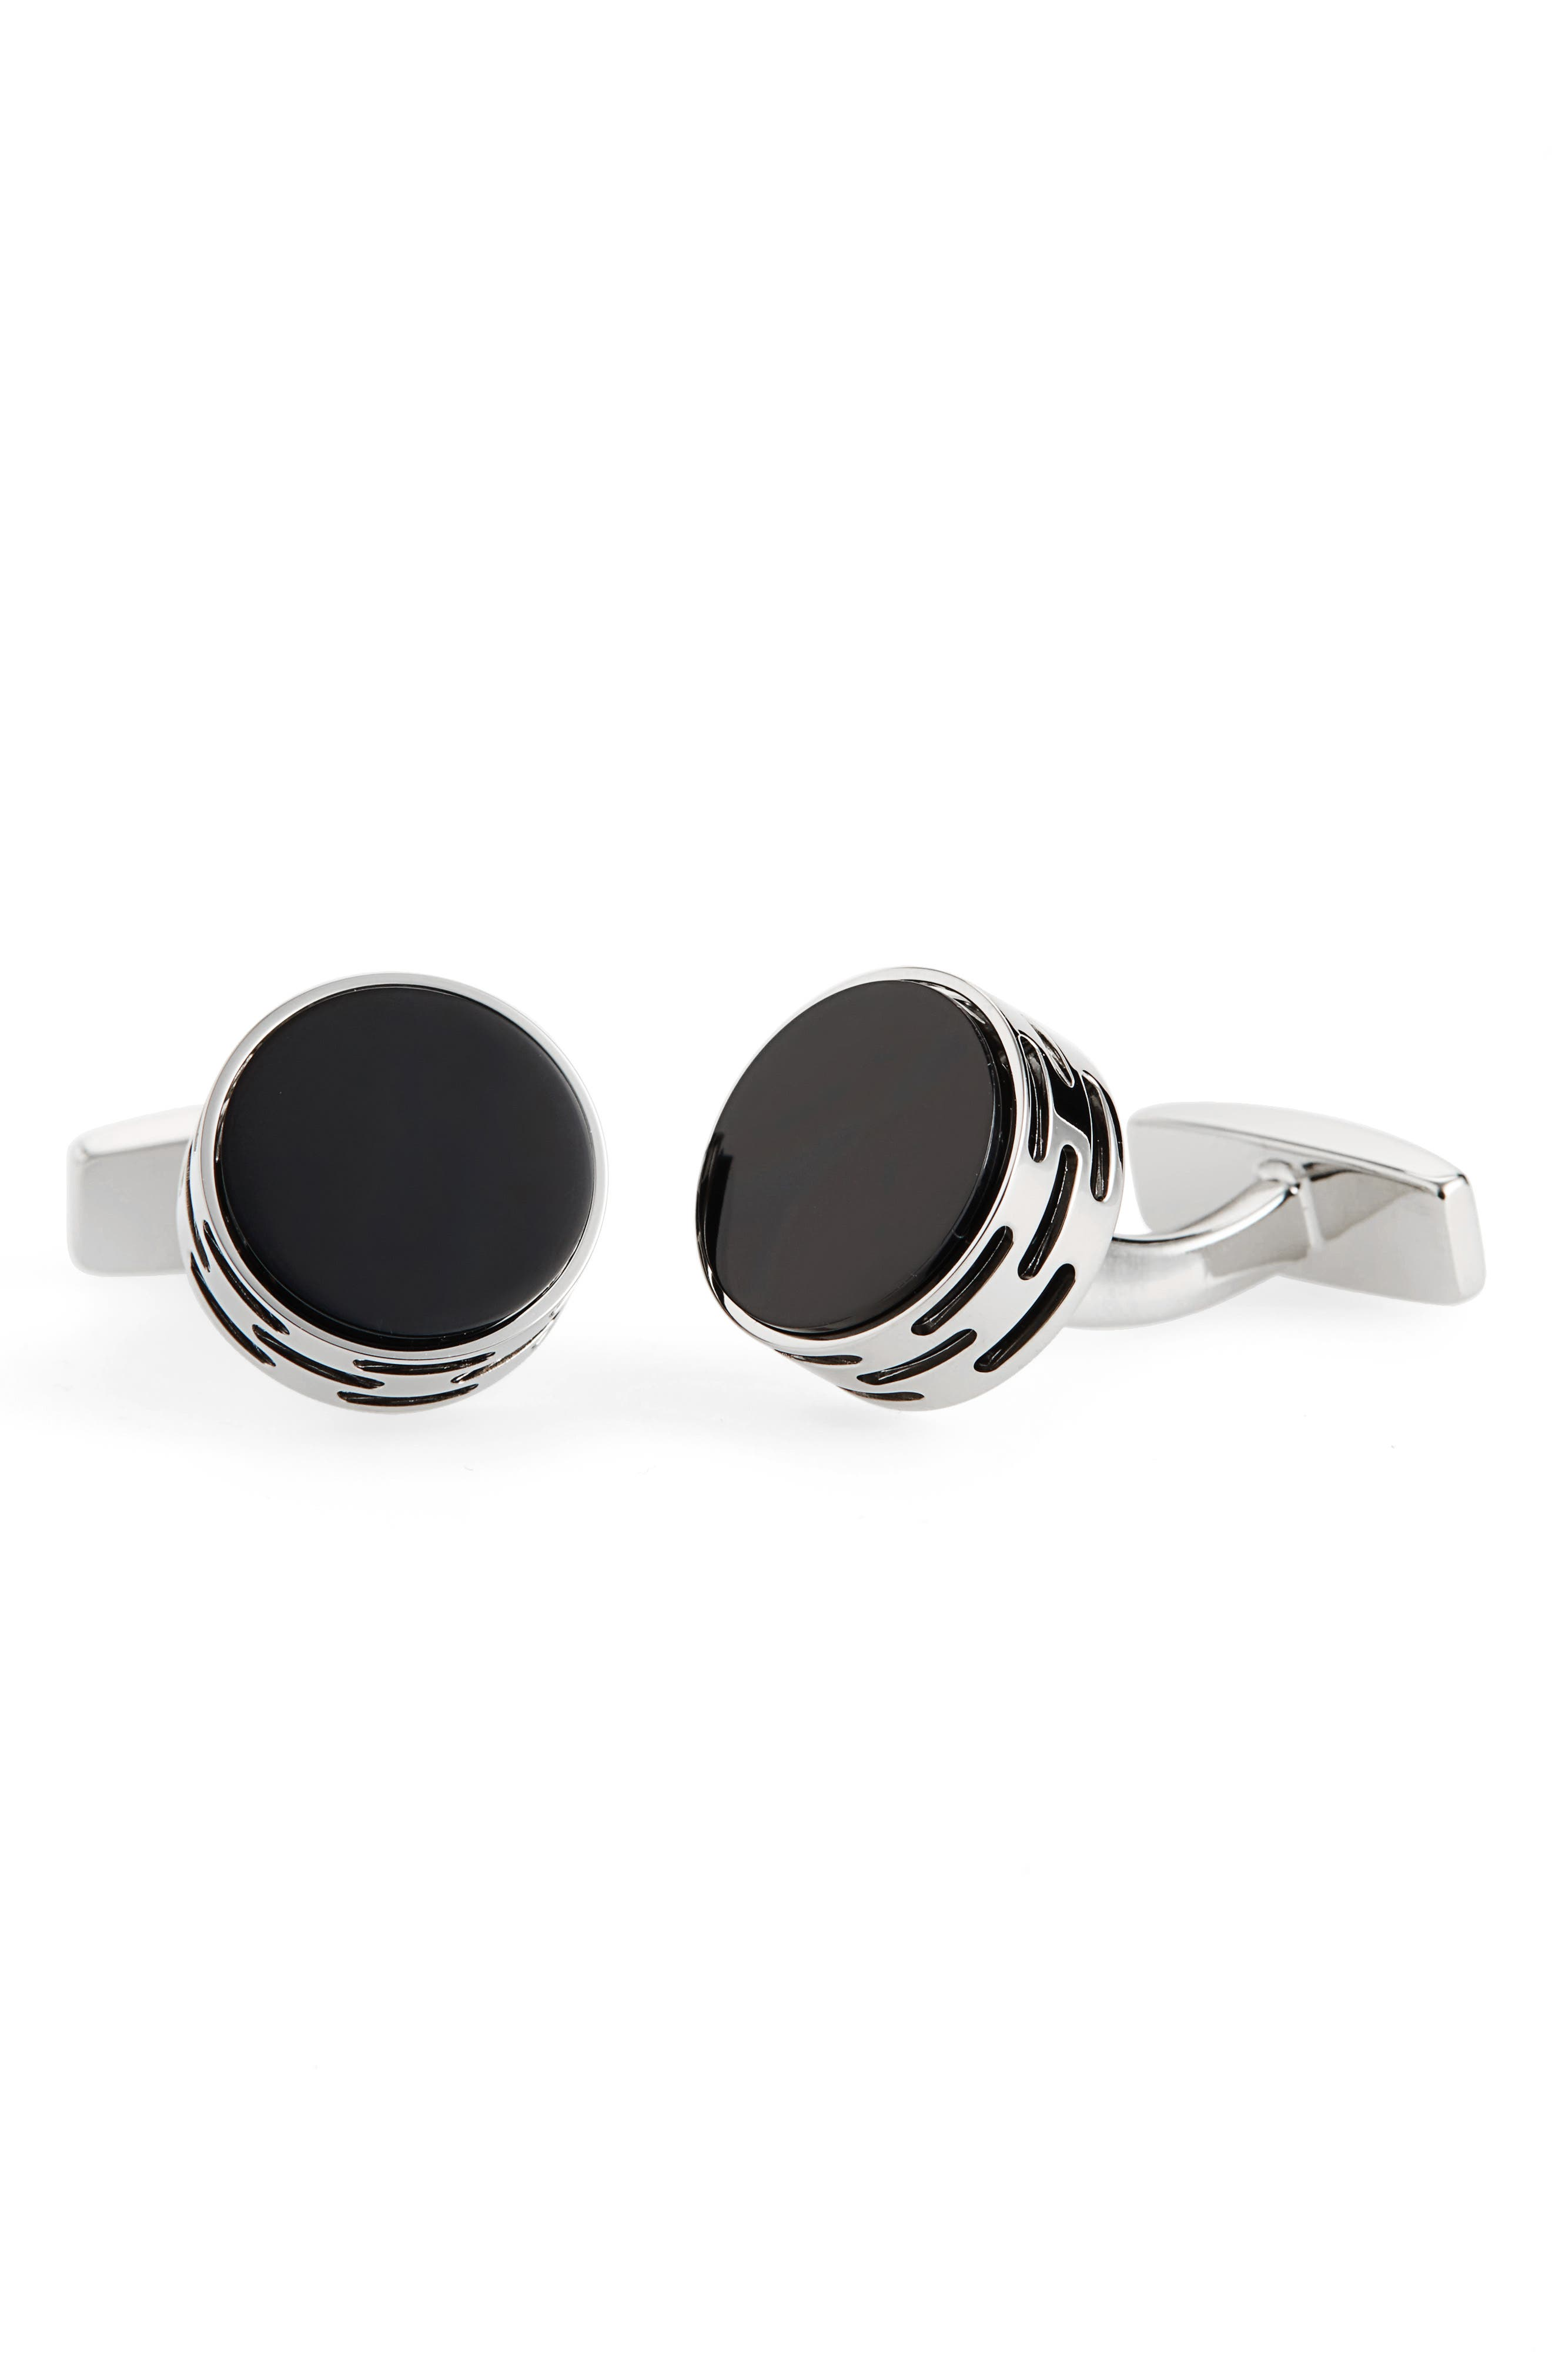 Brass Cuff Links,                             Main thumbnail 1, color,                             001